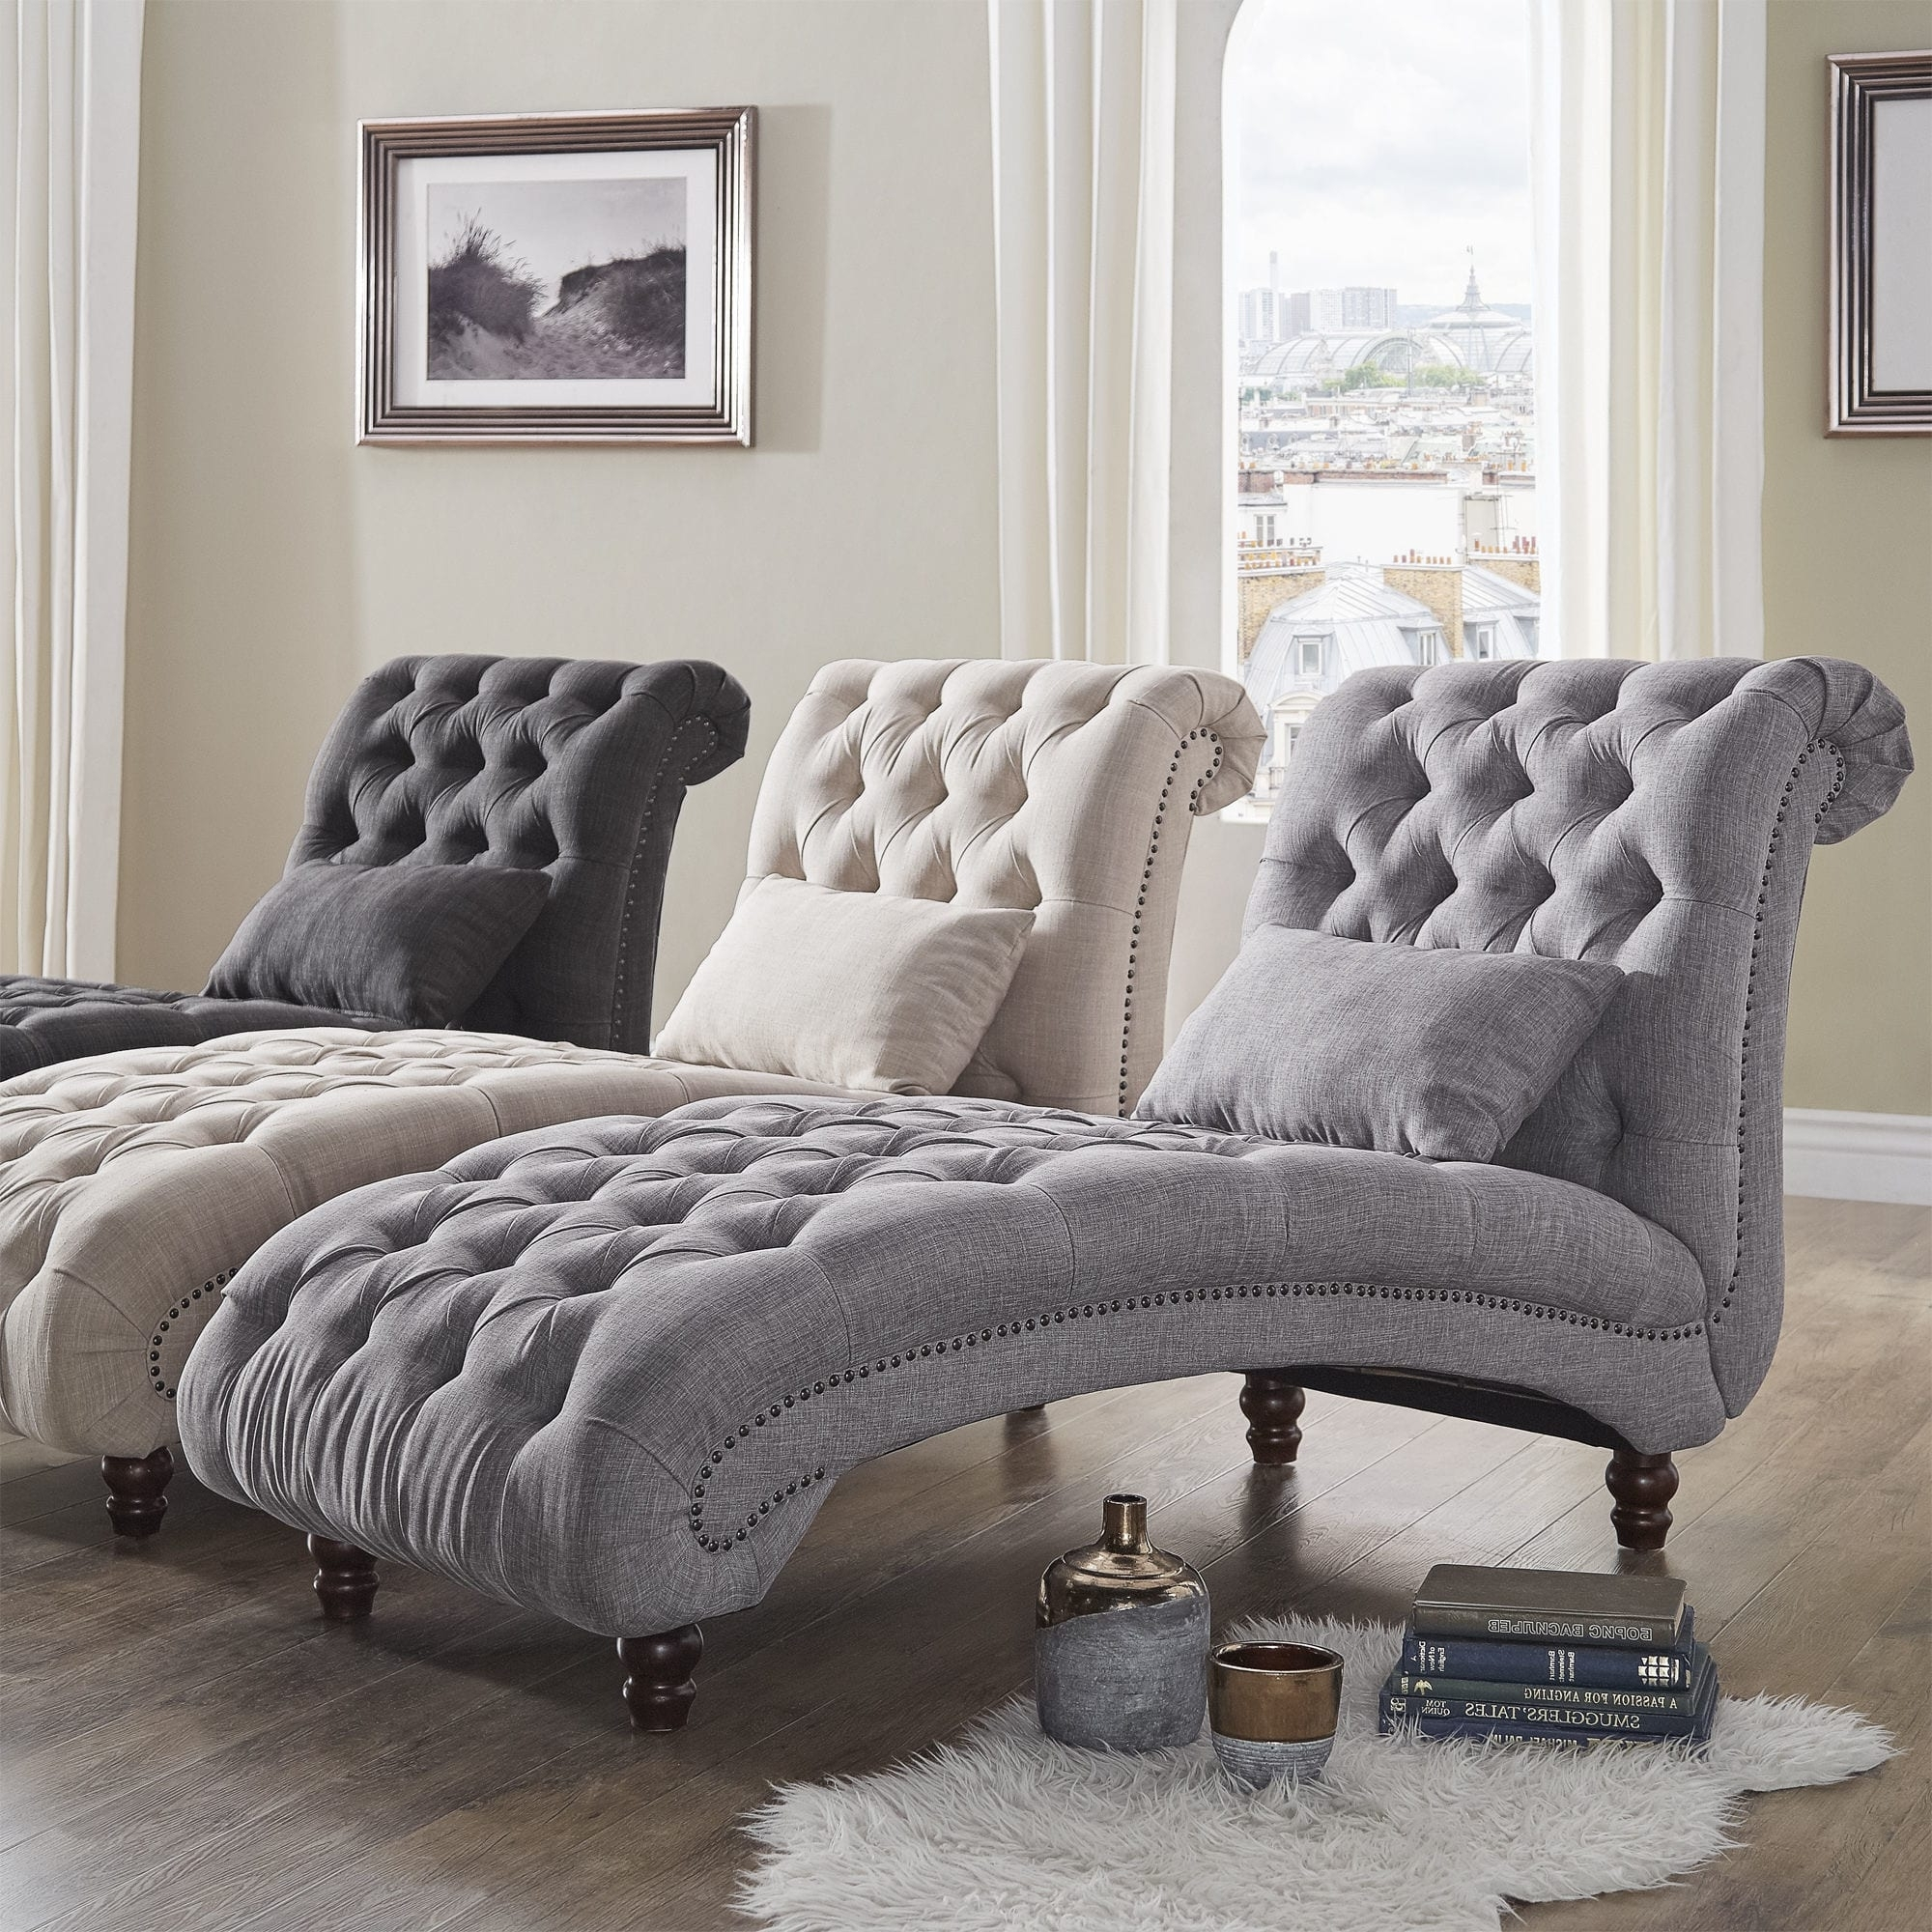 Oversized Chaises With 2017 Knightsbridge Tufted Oversized Chaise Loungeinspire Q Artisan (View 9 of 15)